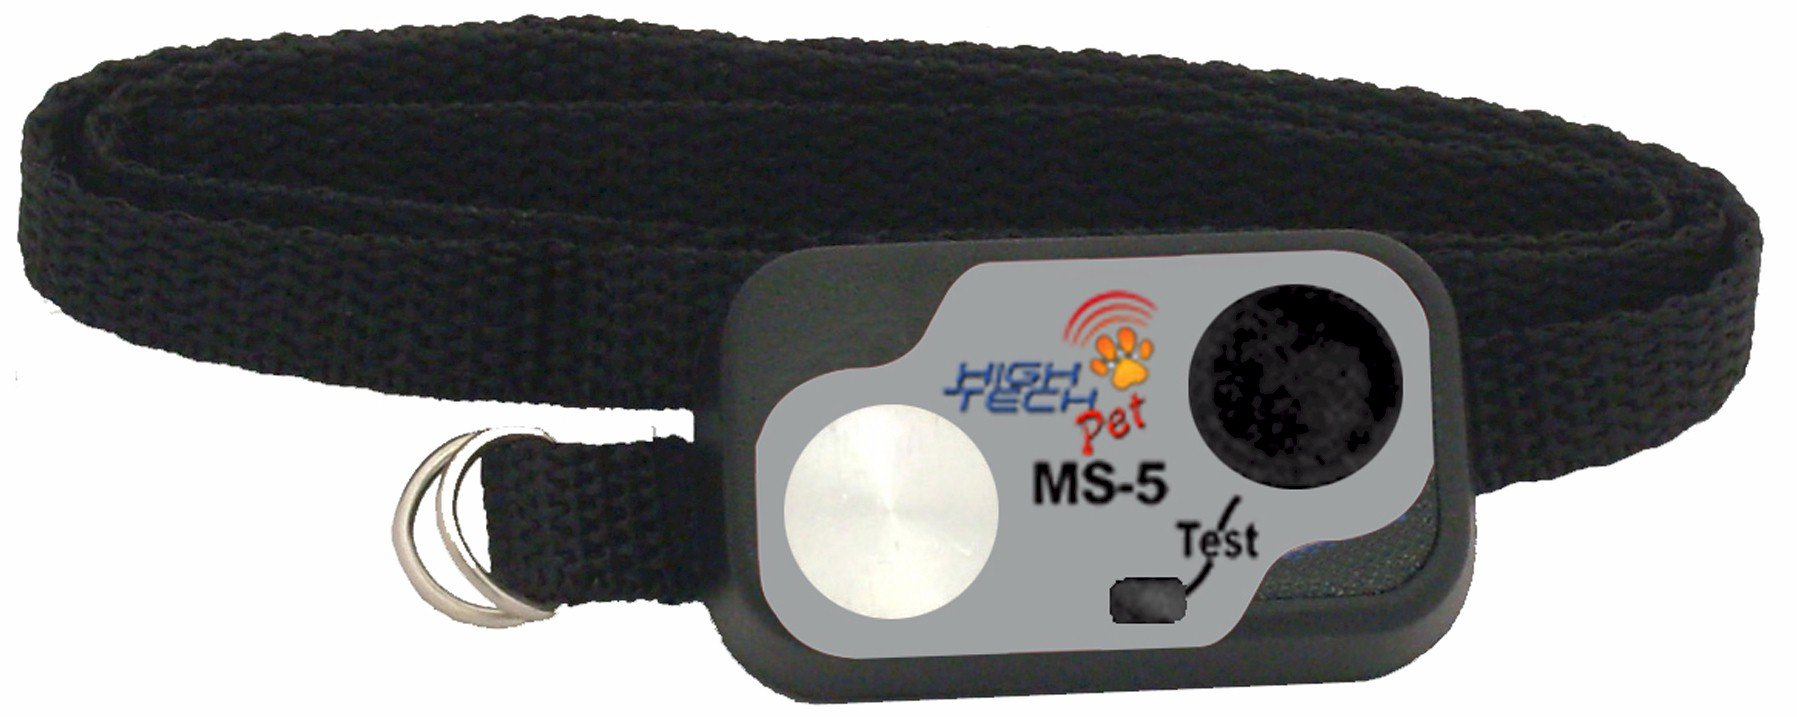 High Tech Pet Micro Sonic 5 Water-Resistant Collar with Digital Transmitter M